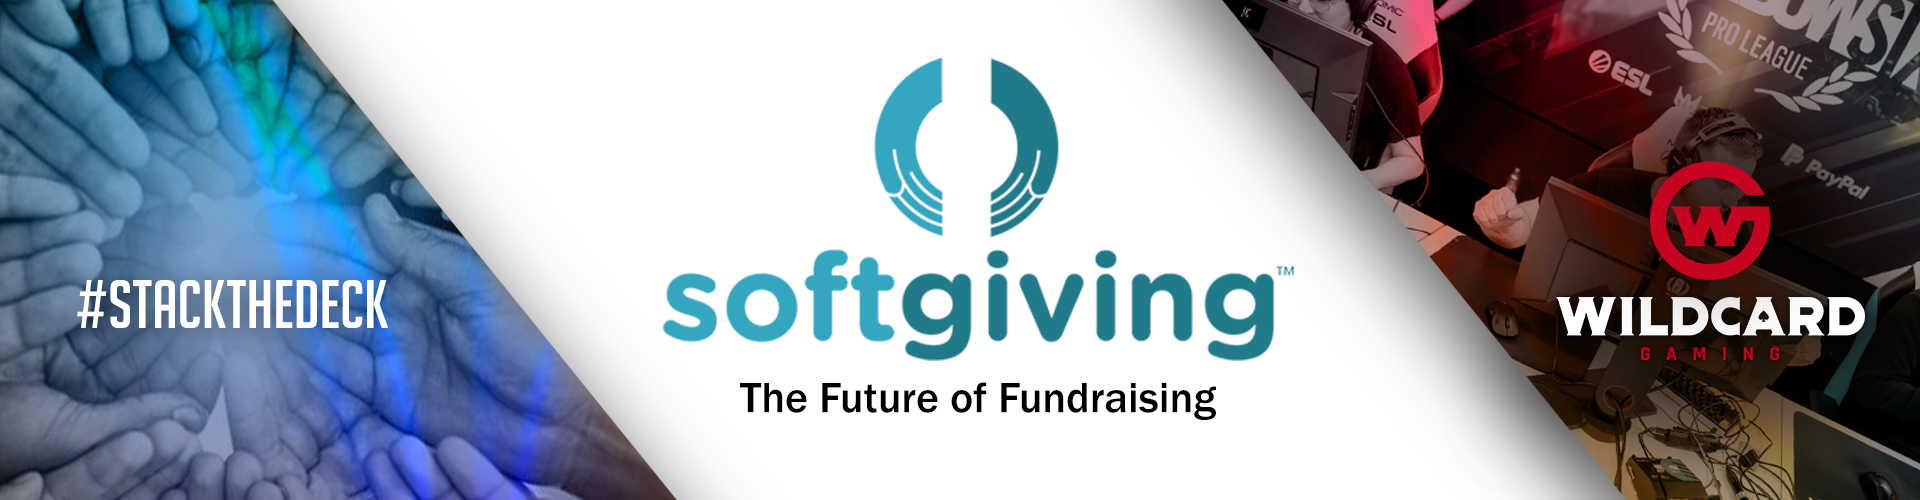 Softgiving Partnership Announcement